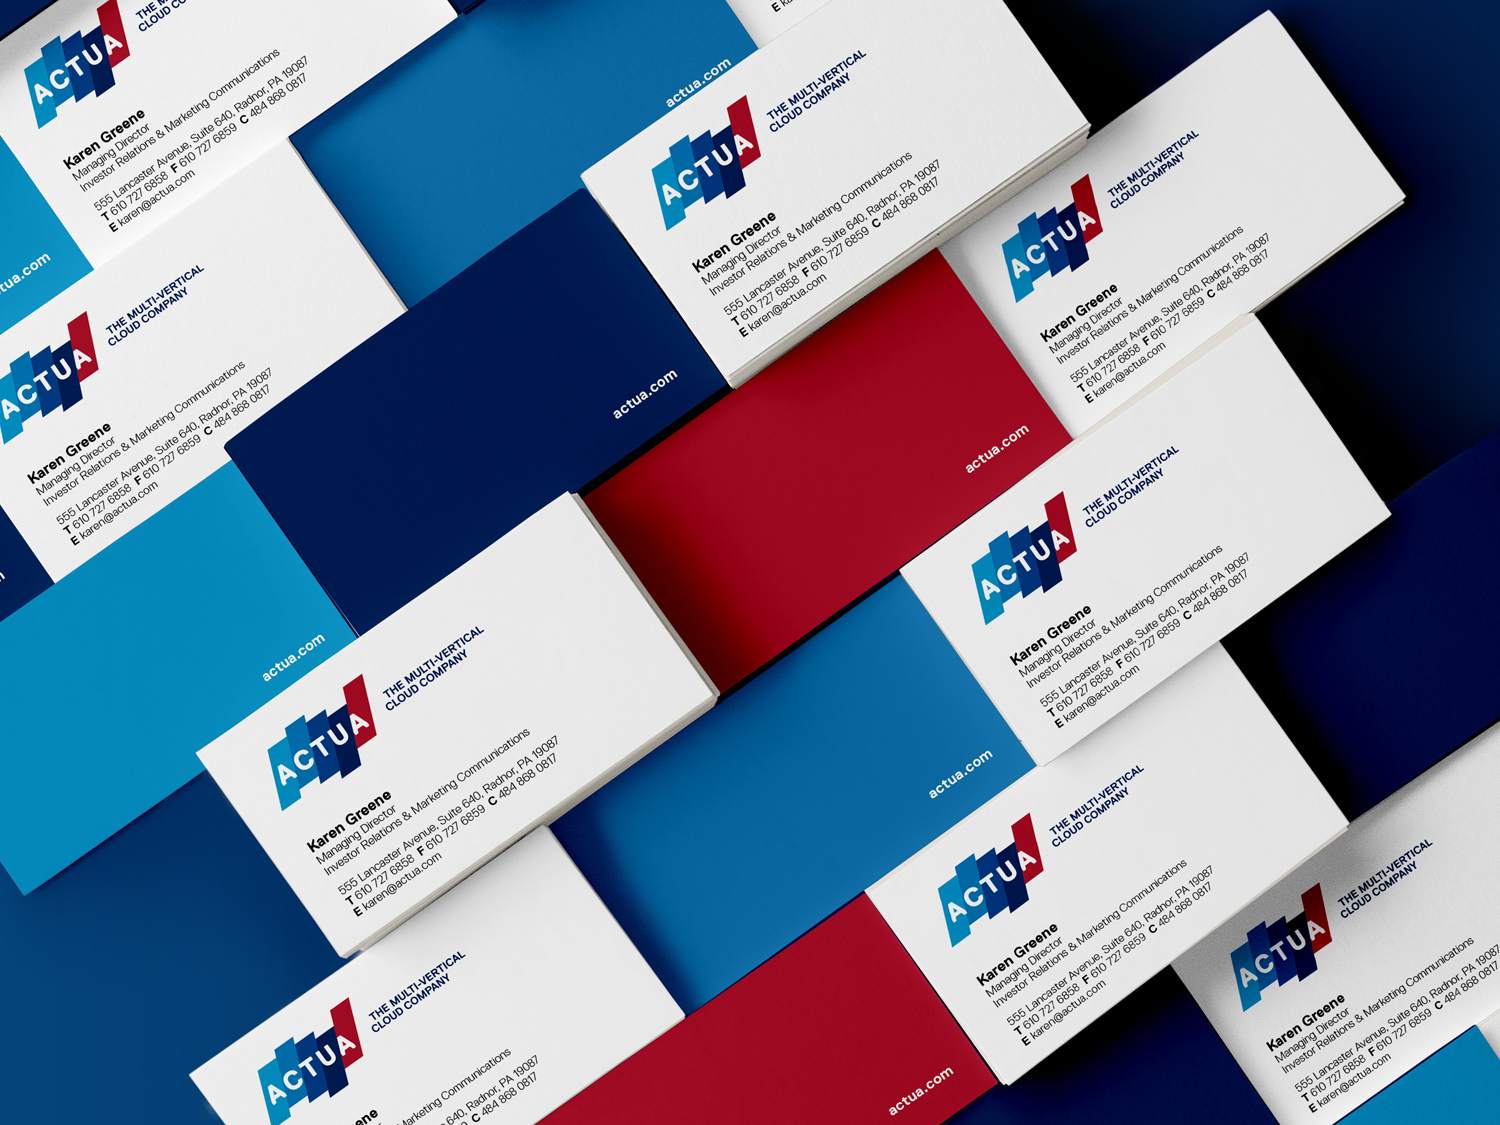 Images of Actua business cards (front & back)